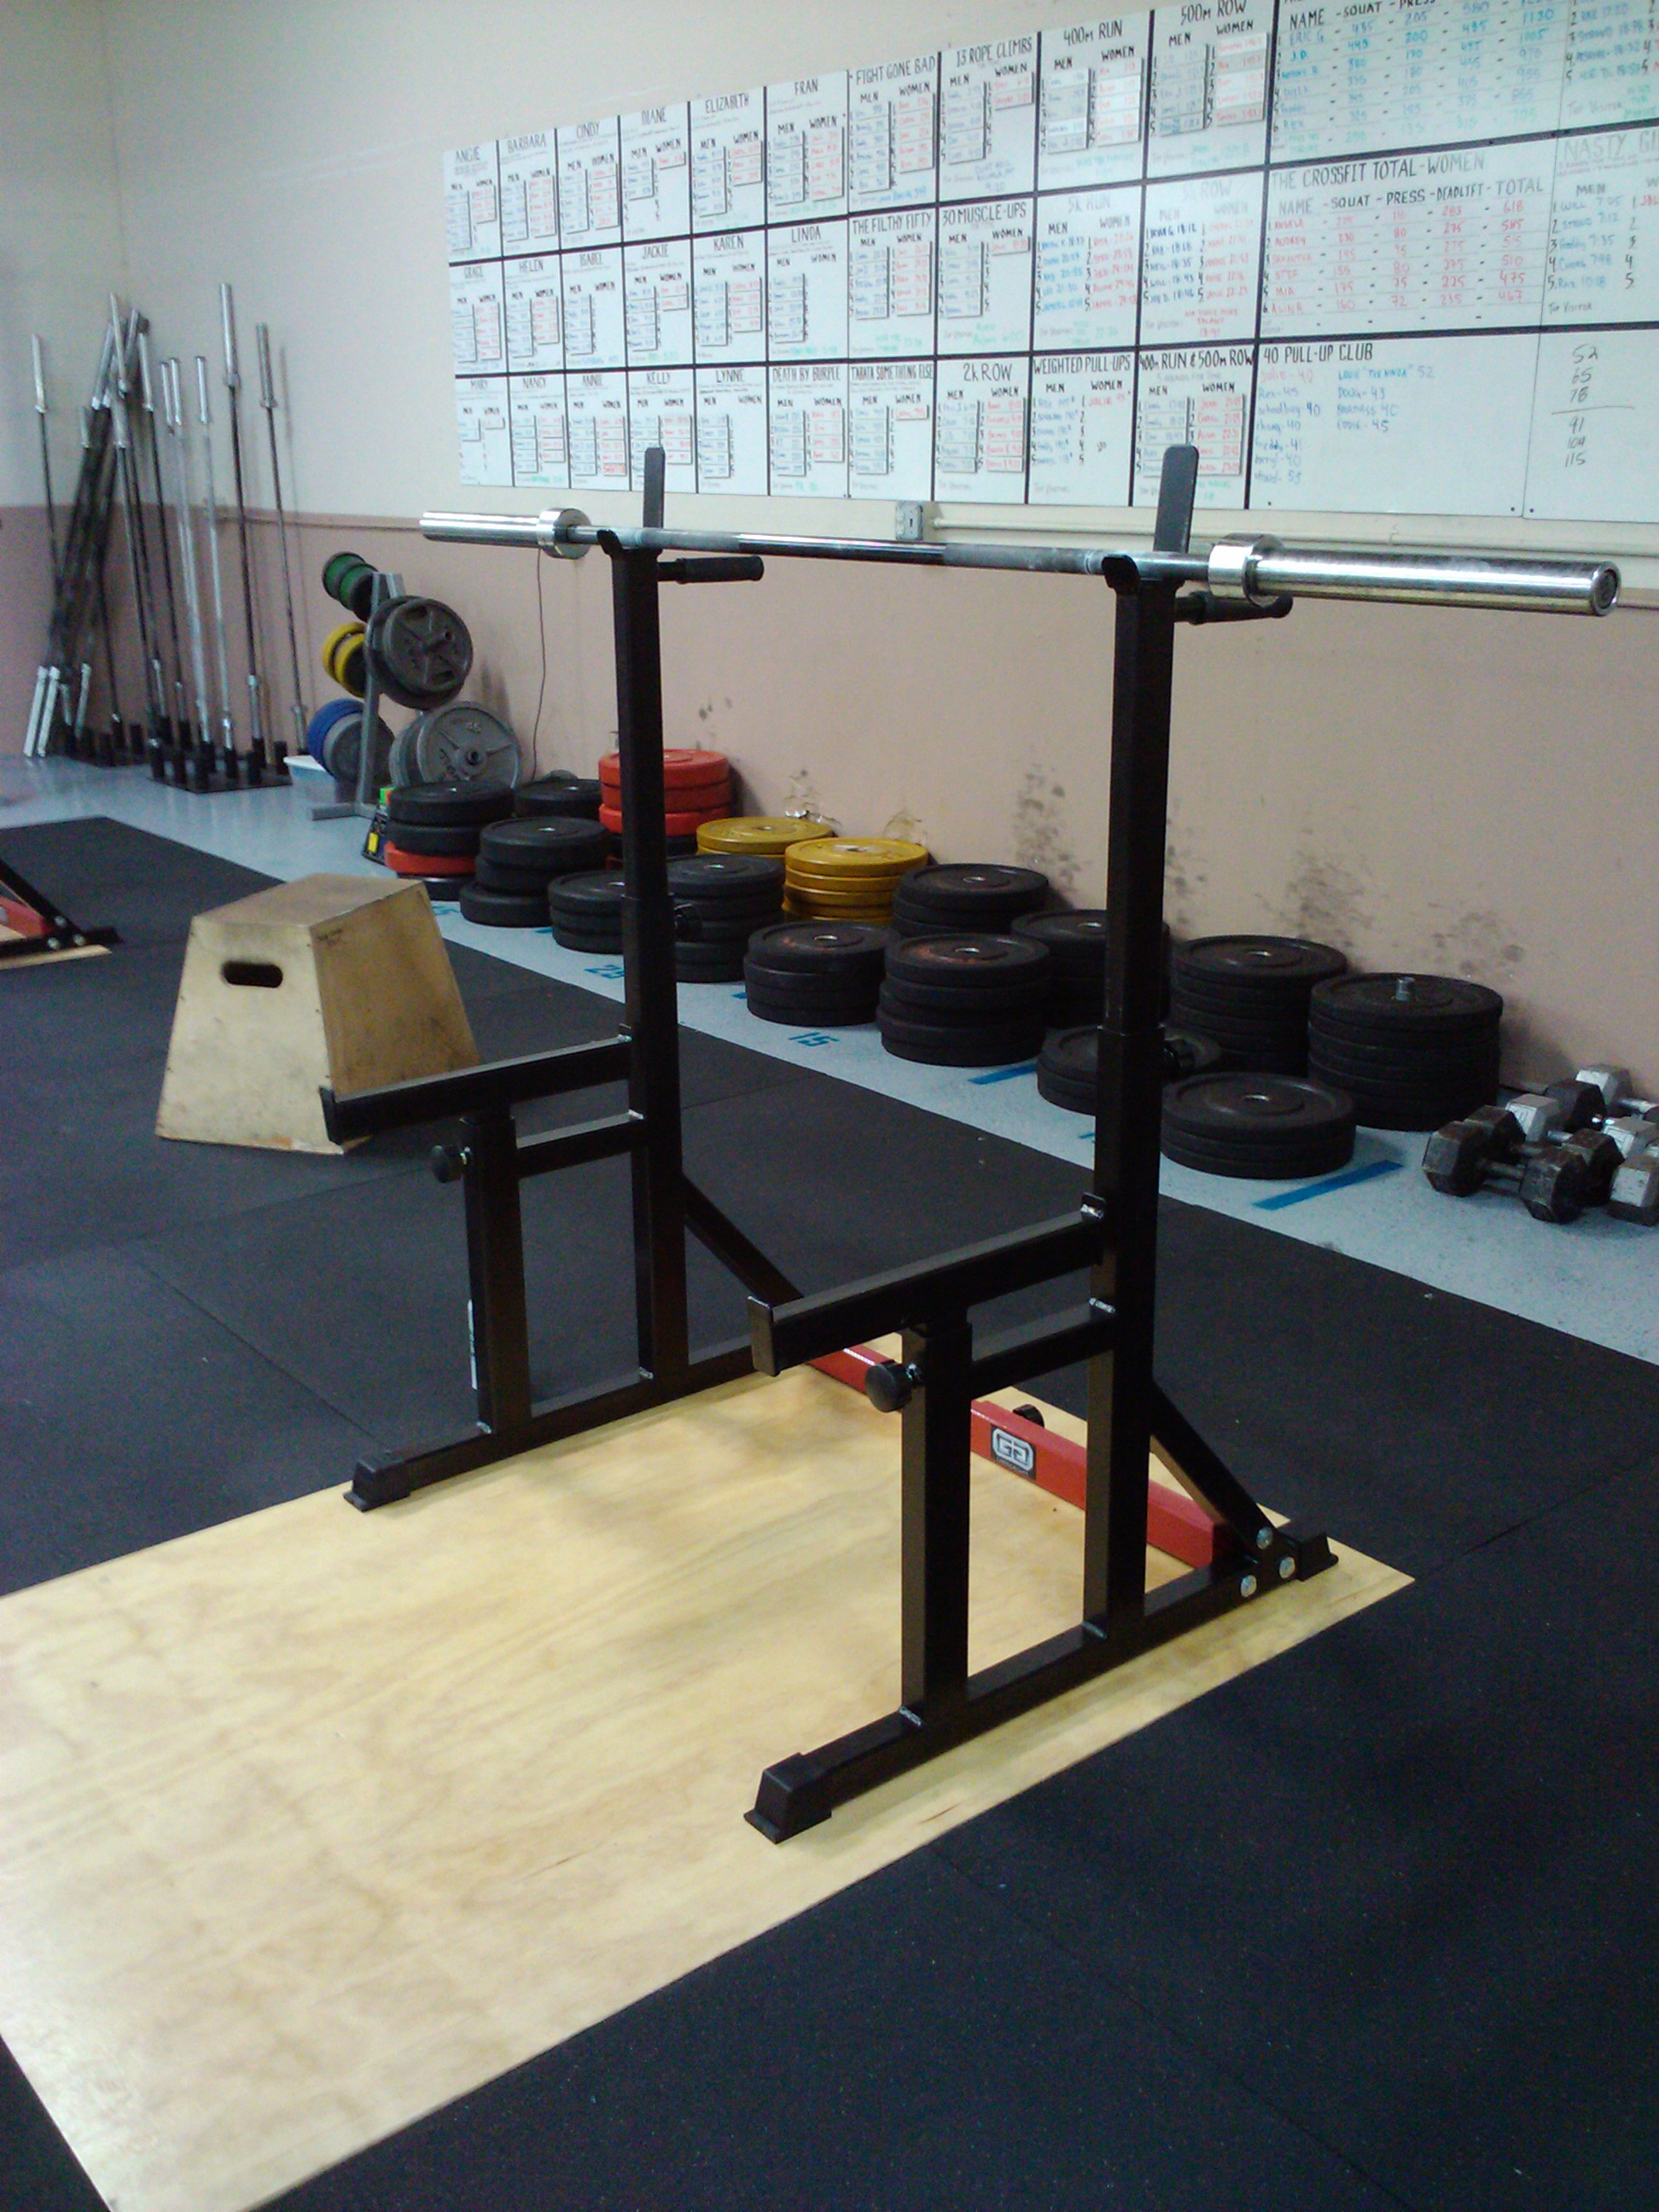 Backyard gym ideas large size of garage plans small ultimate